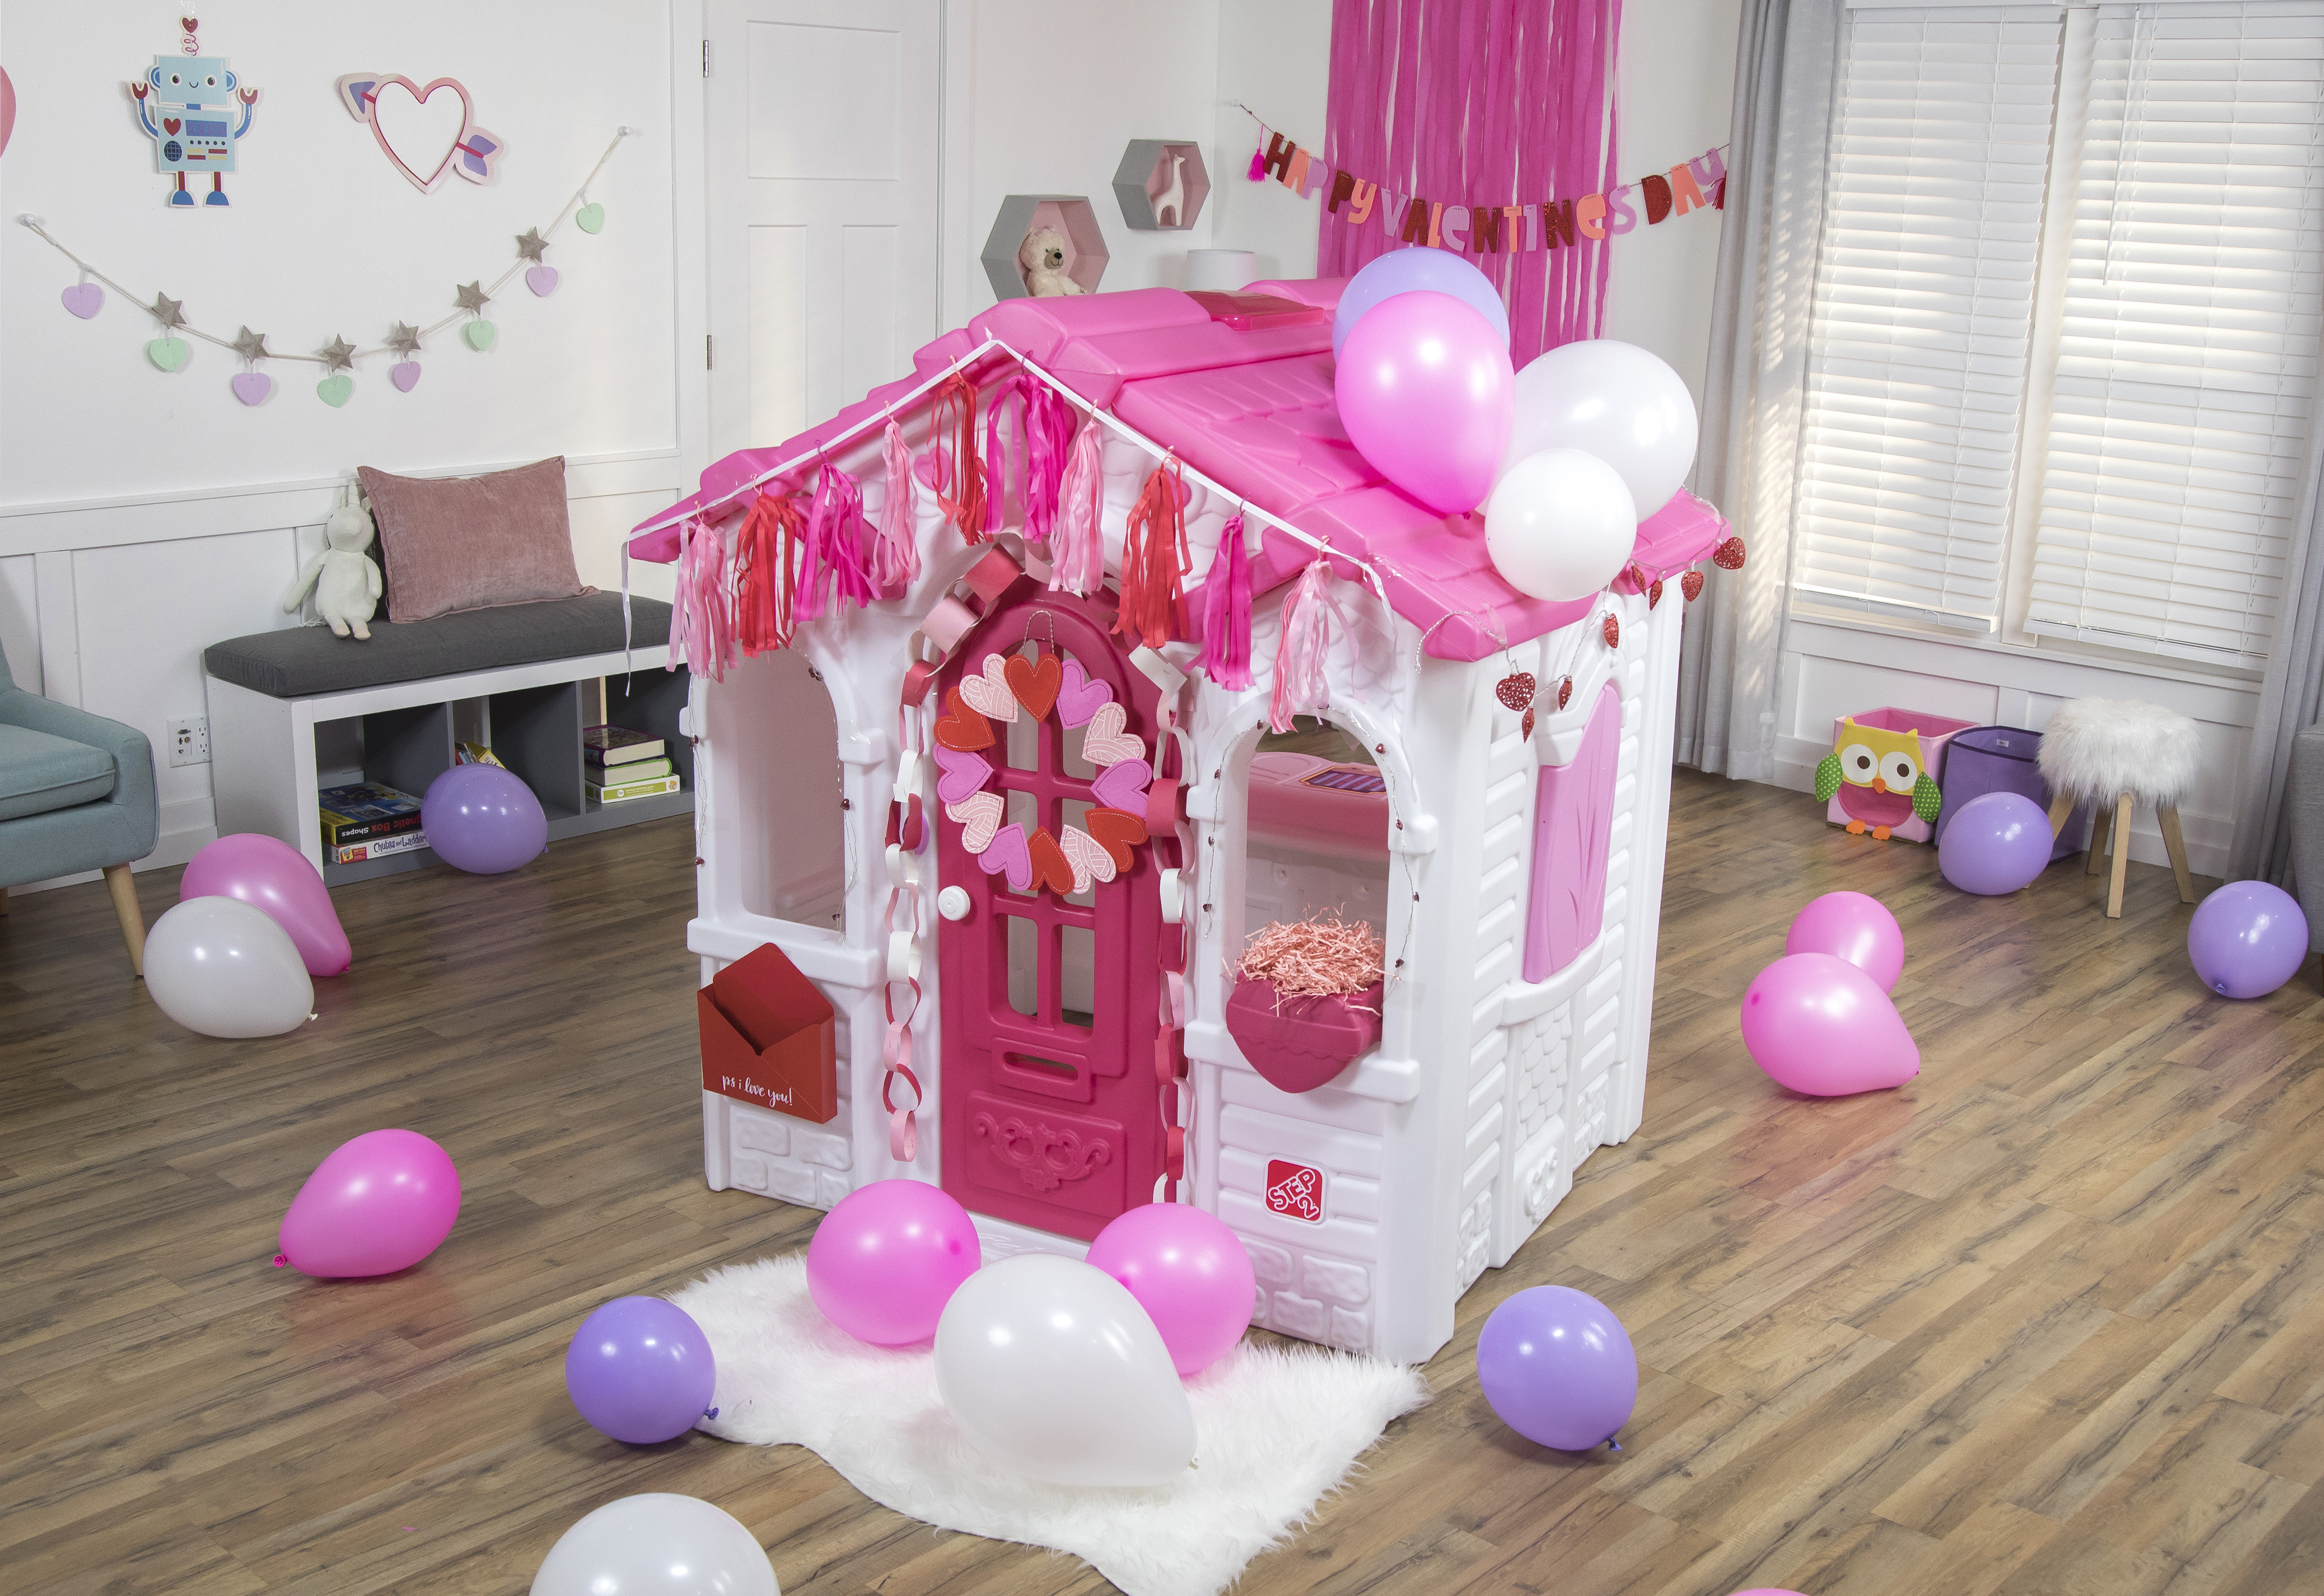 dc6b928e63e21 DIY Your Playhouse for Valentine s Day +  Step2VDayGiveaway CONTEST   (CLOSED) . by Step2